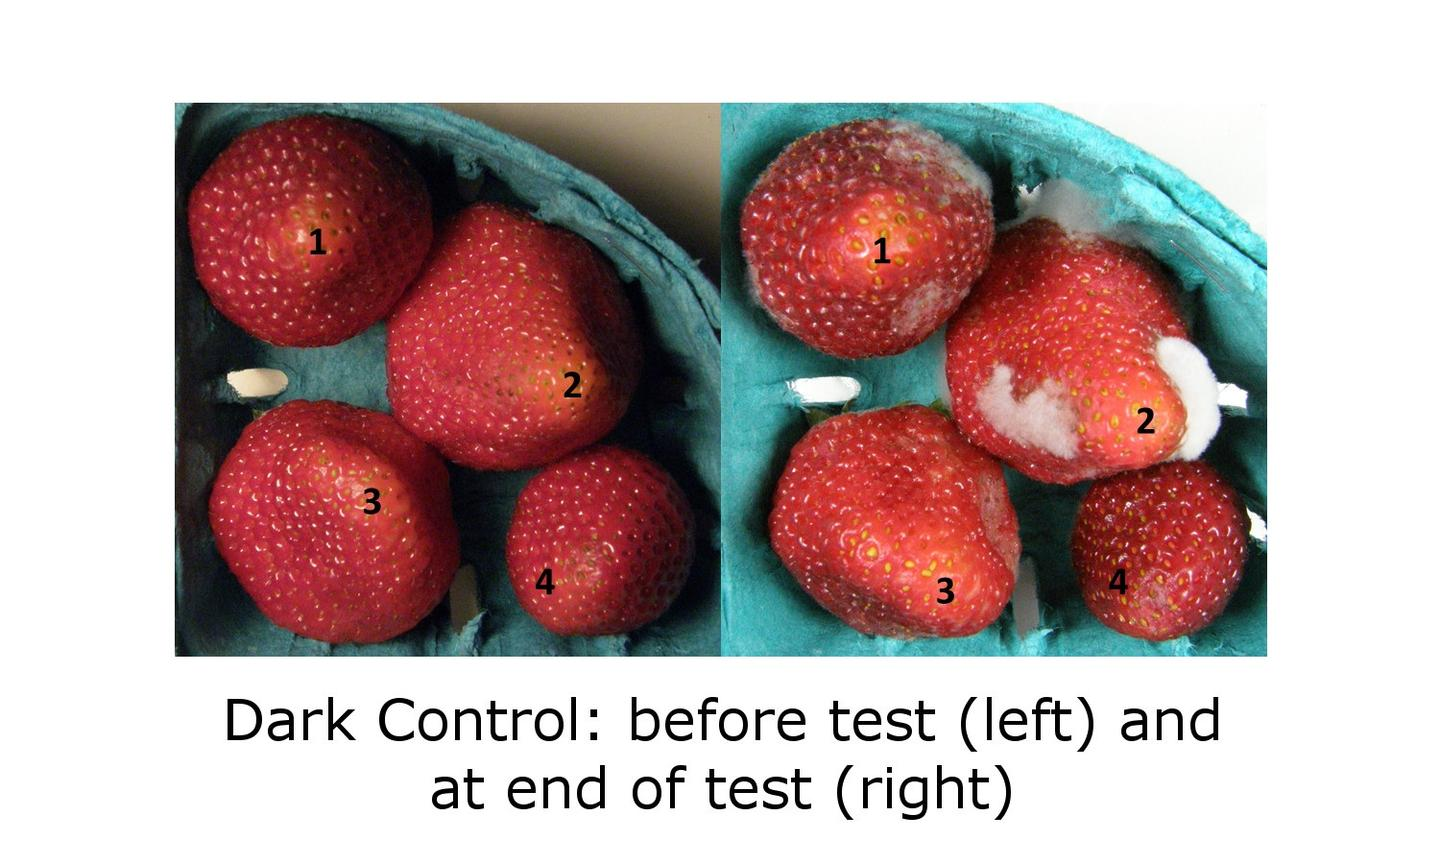 Status quo: the control group of strawberries grow rot and mold